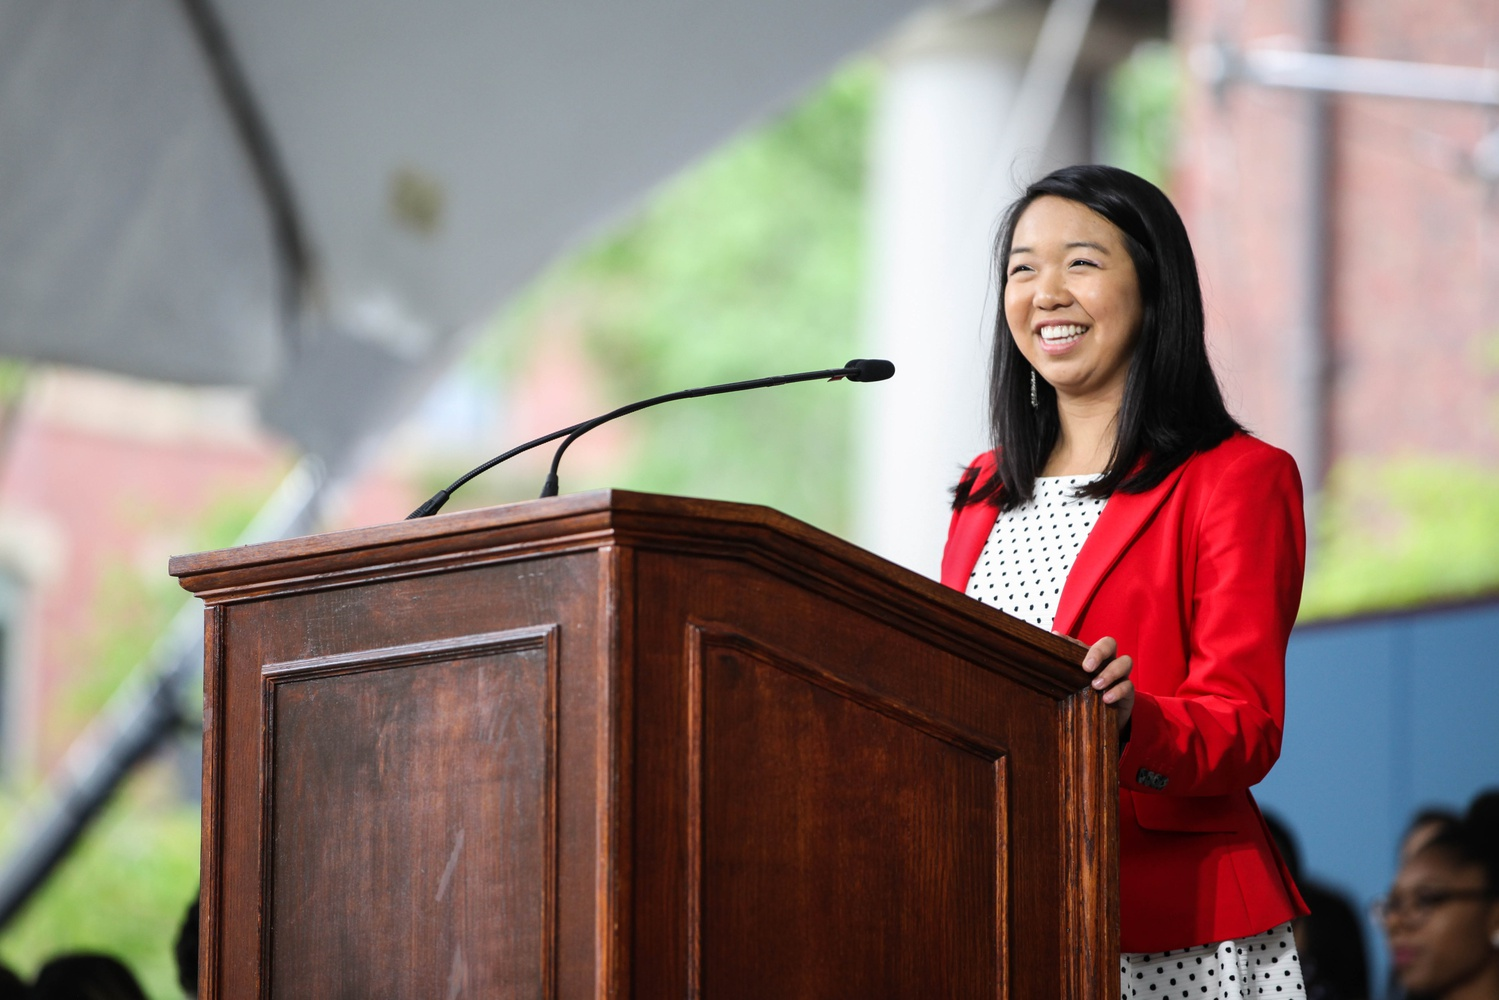 Catherine L. Zhang '19, the First Senior Class Marshal for the Class of 2019, spoke at Class Day to her entire undergraduate cohort.